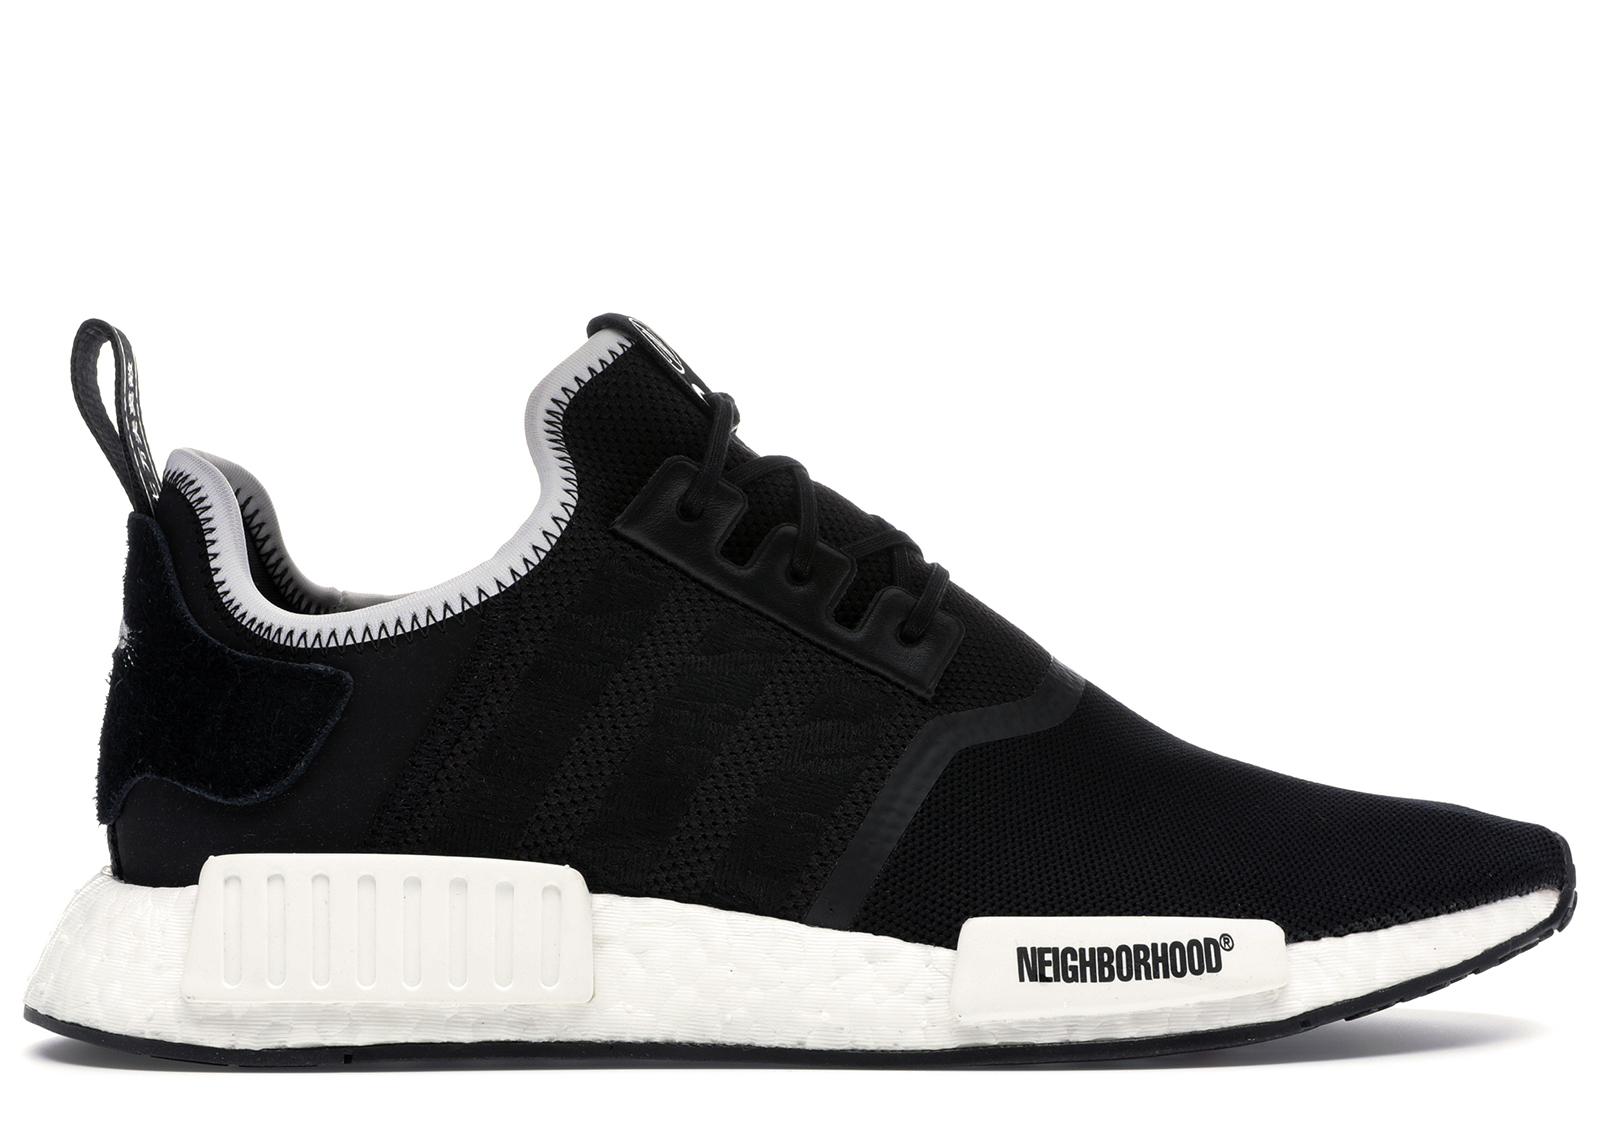 Neighborhood x Invincible x adidas NMD R1 Black | CQ1775